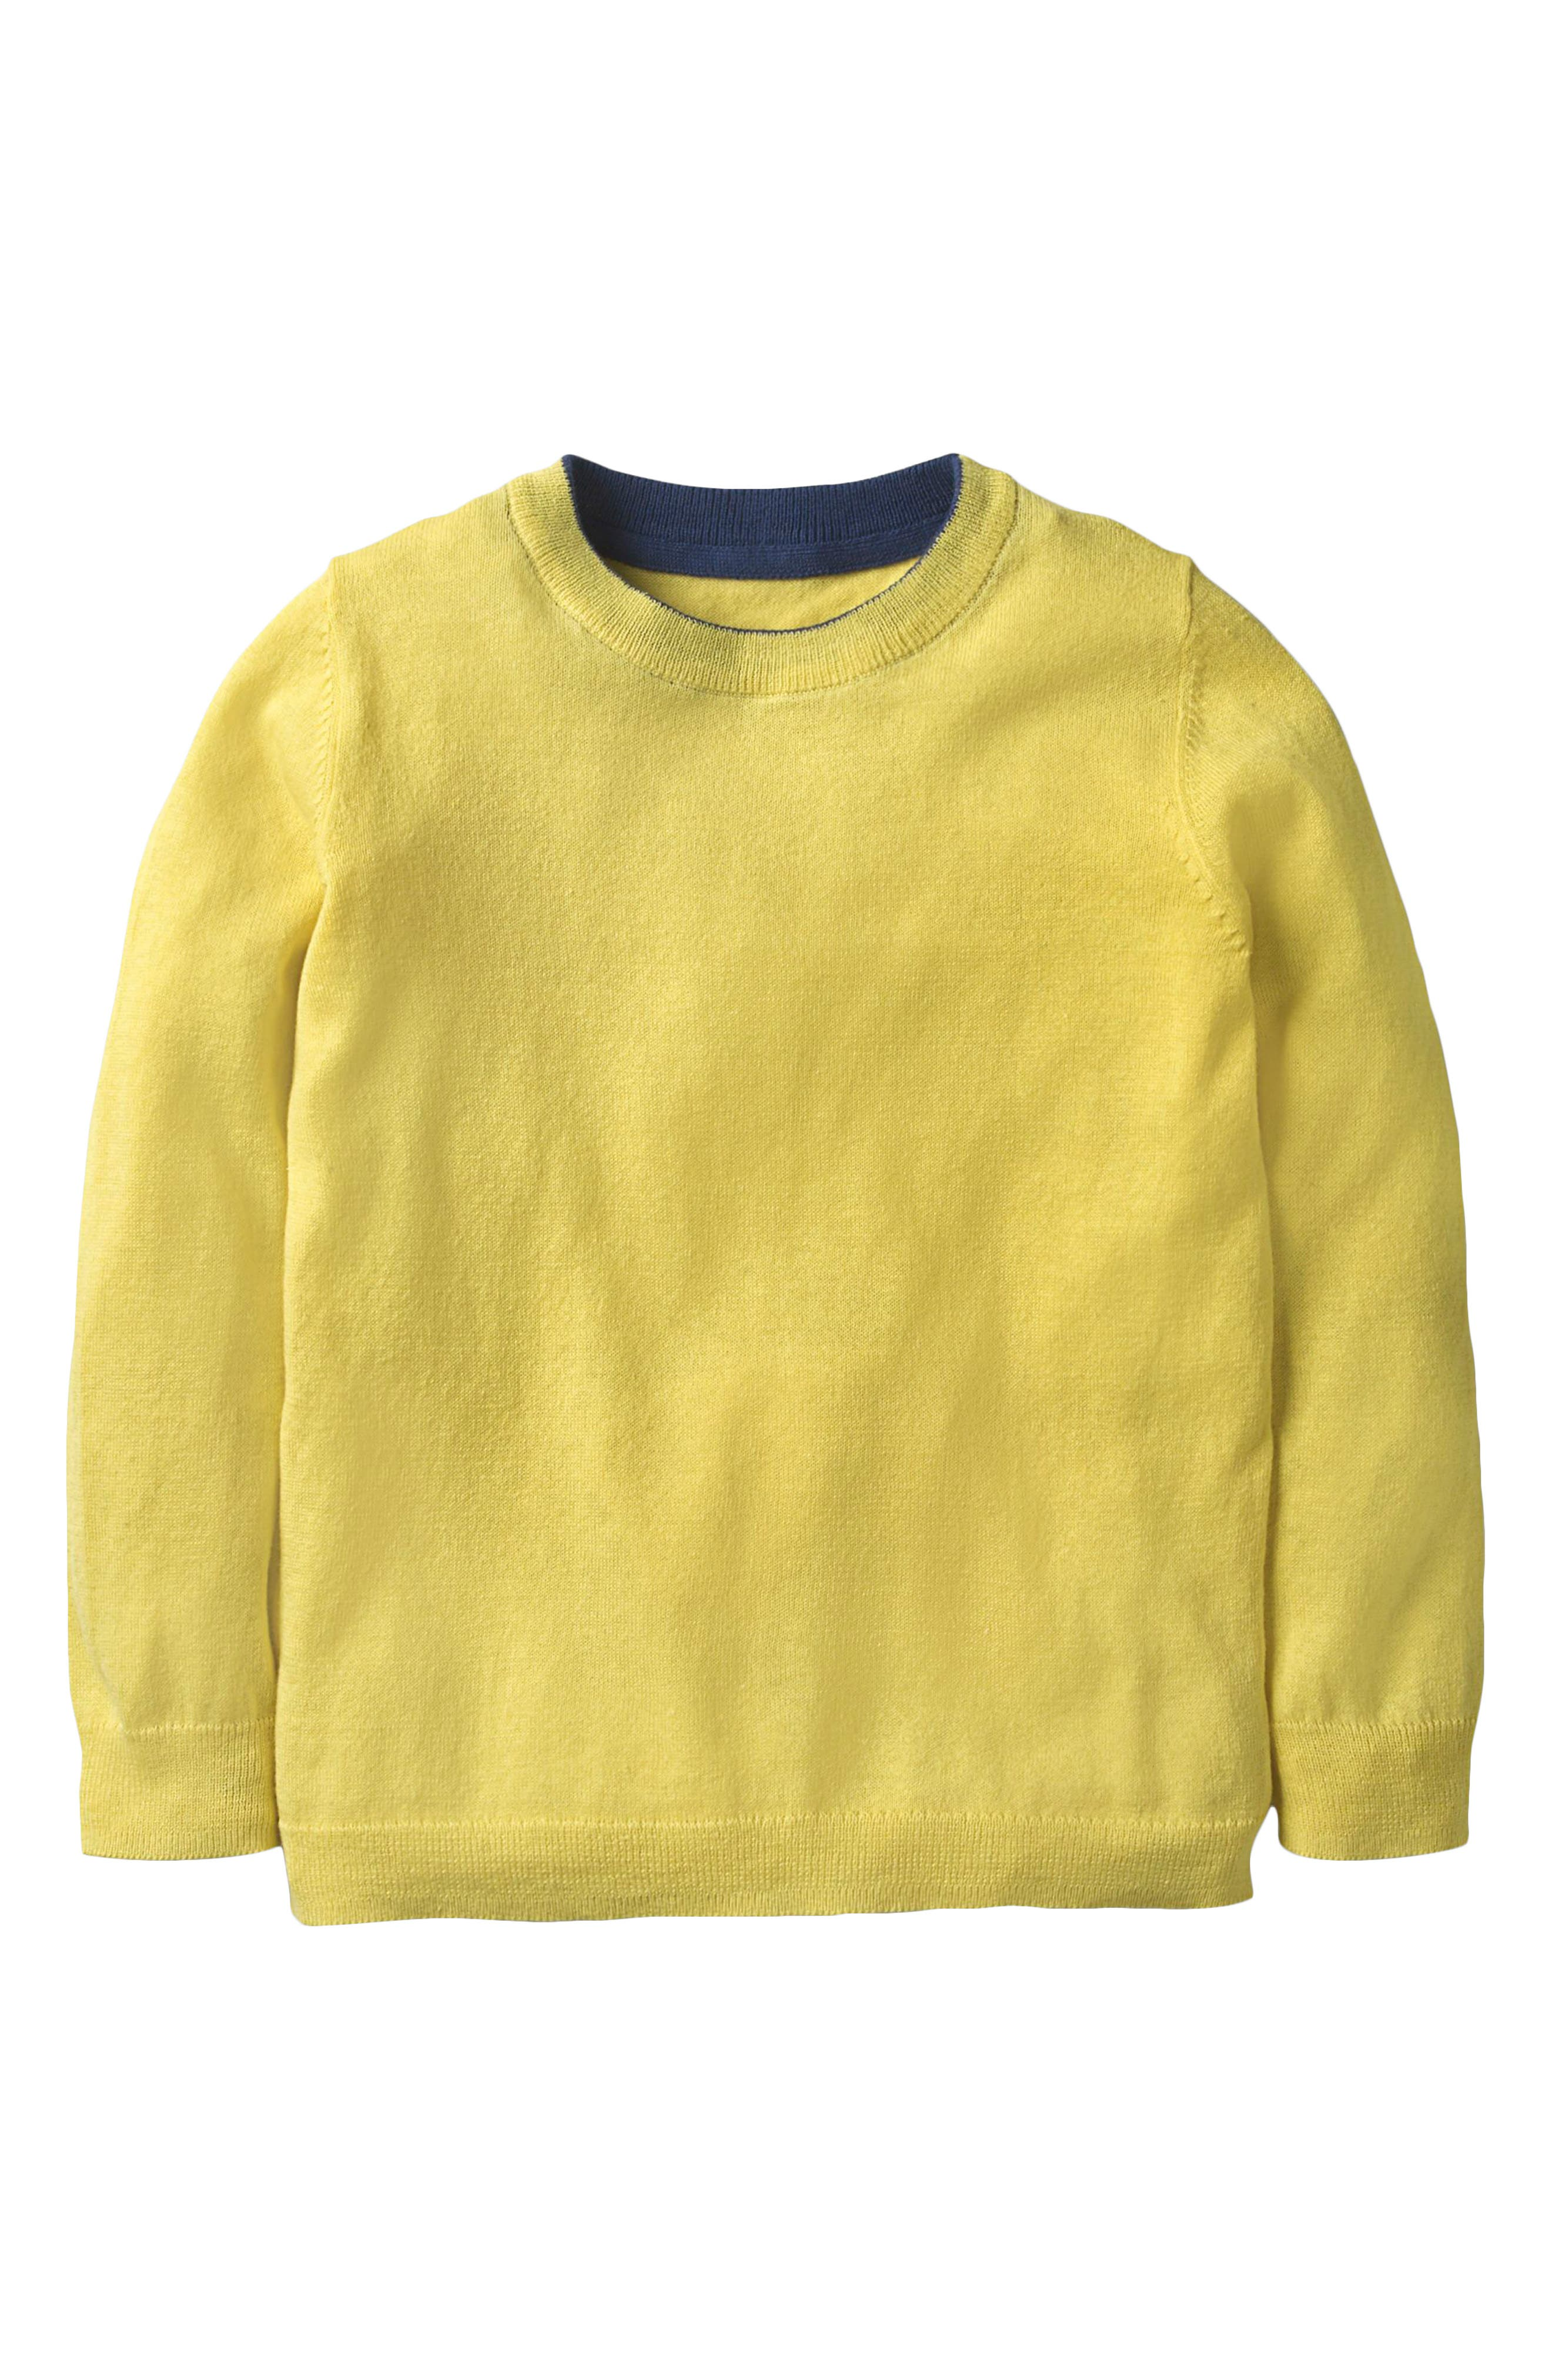 Cotton & Cashmere Sweater,                         Main,                         color, Sweetcorn Yellow